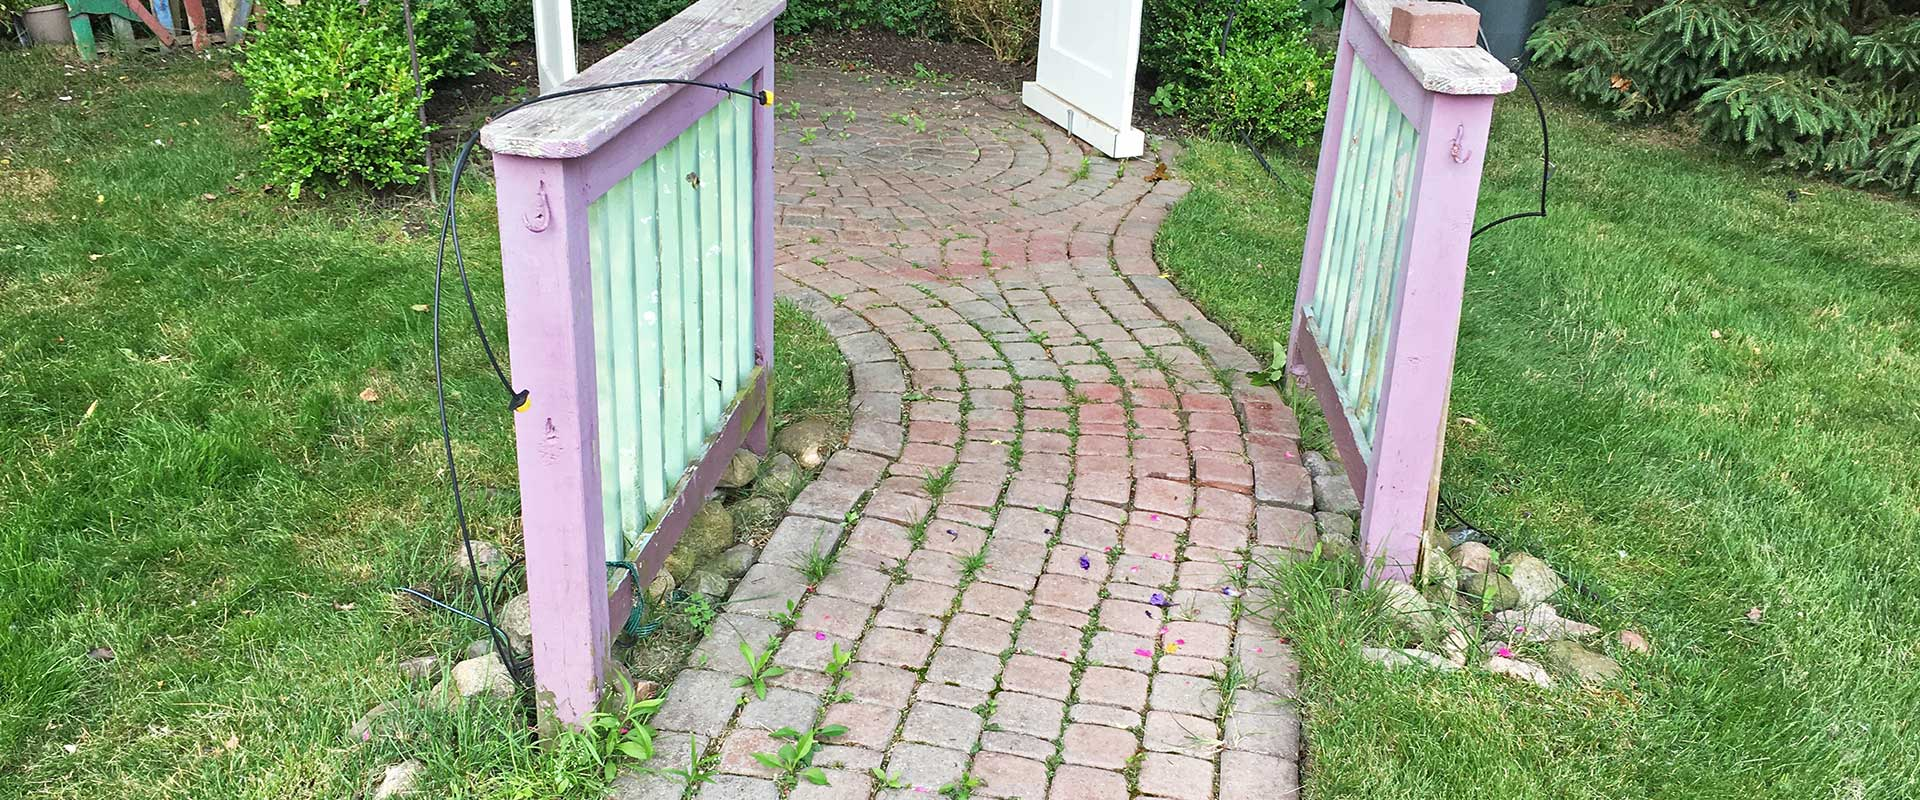 un-leveled brick paver walkway with weeds and moss growing through the joints